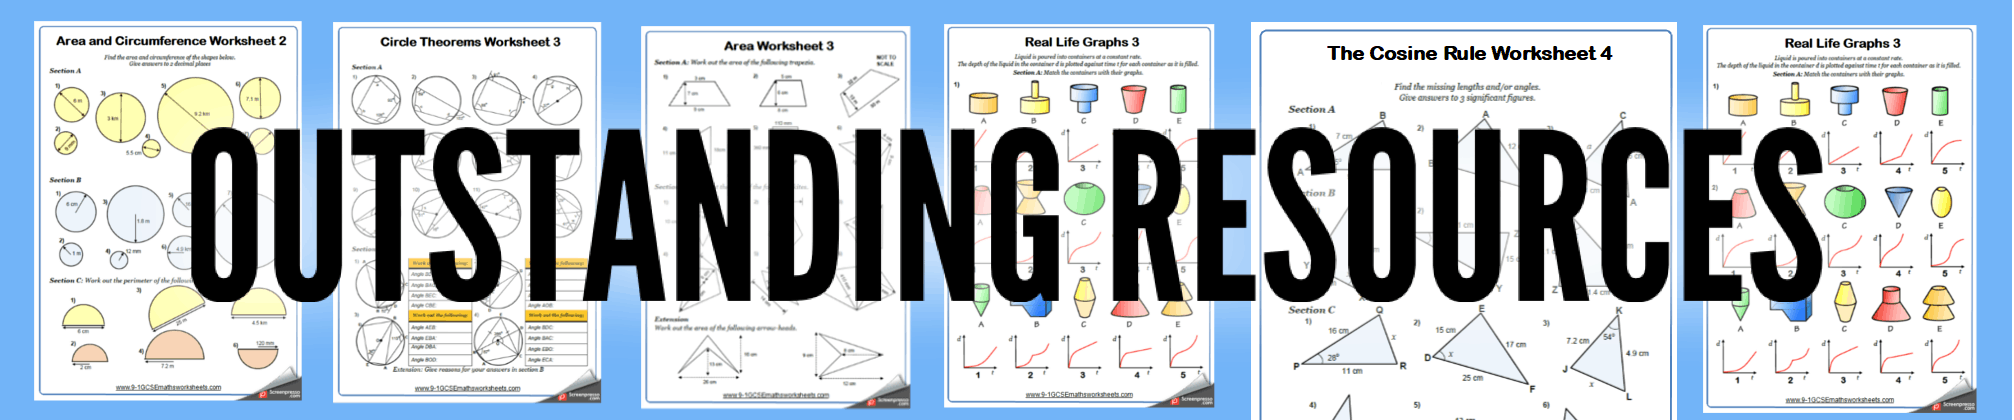 Real Life Graphs Worksheets